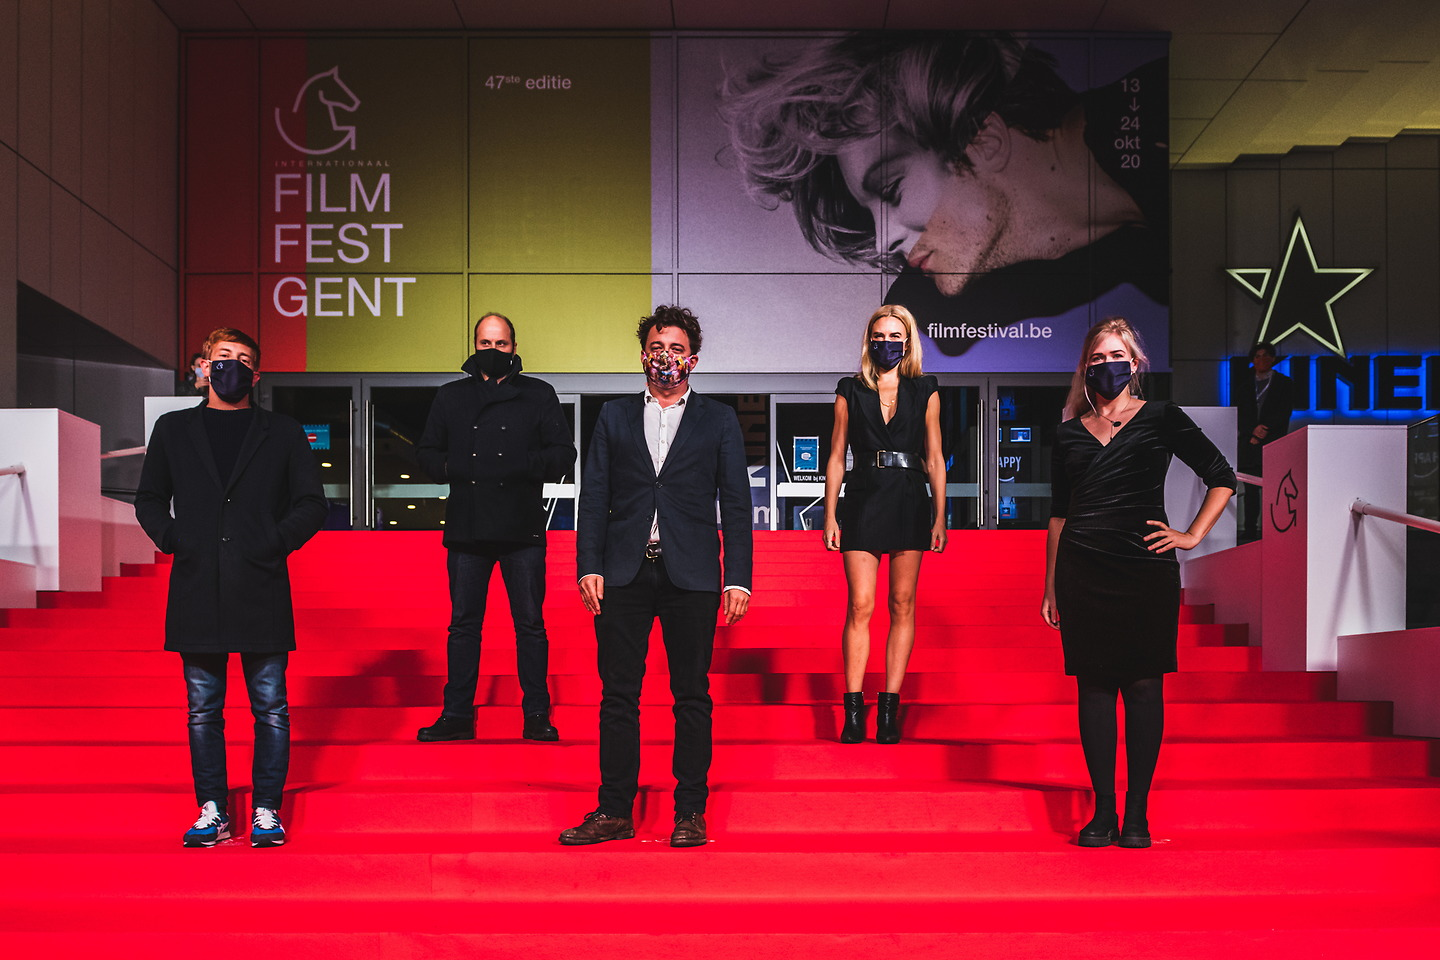 Film Fest Gent - Rode loper internationale jury